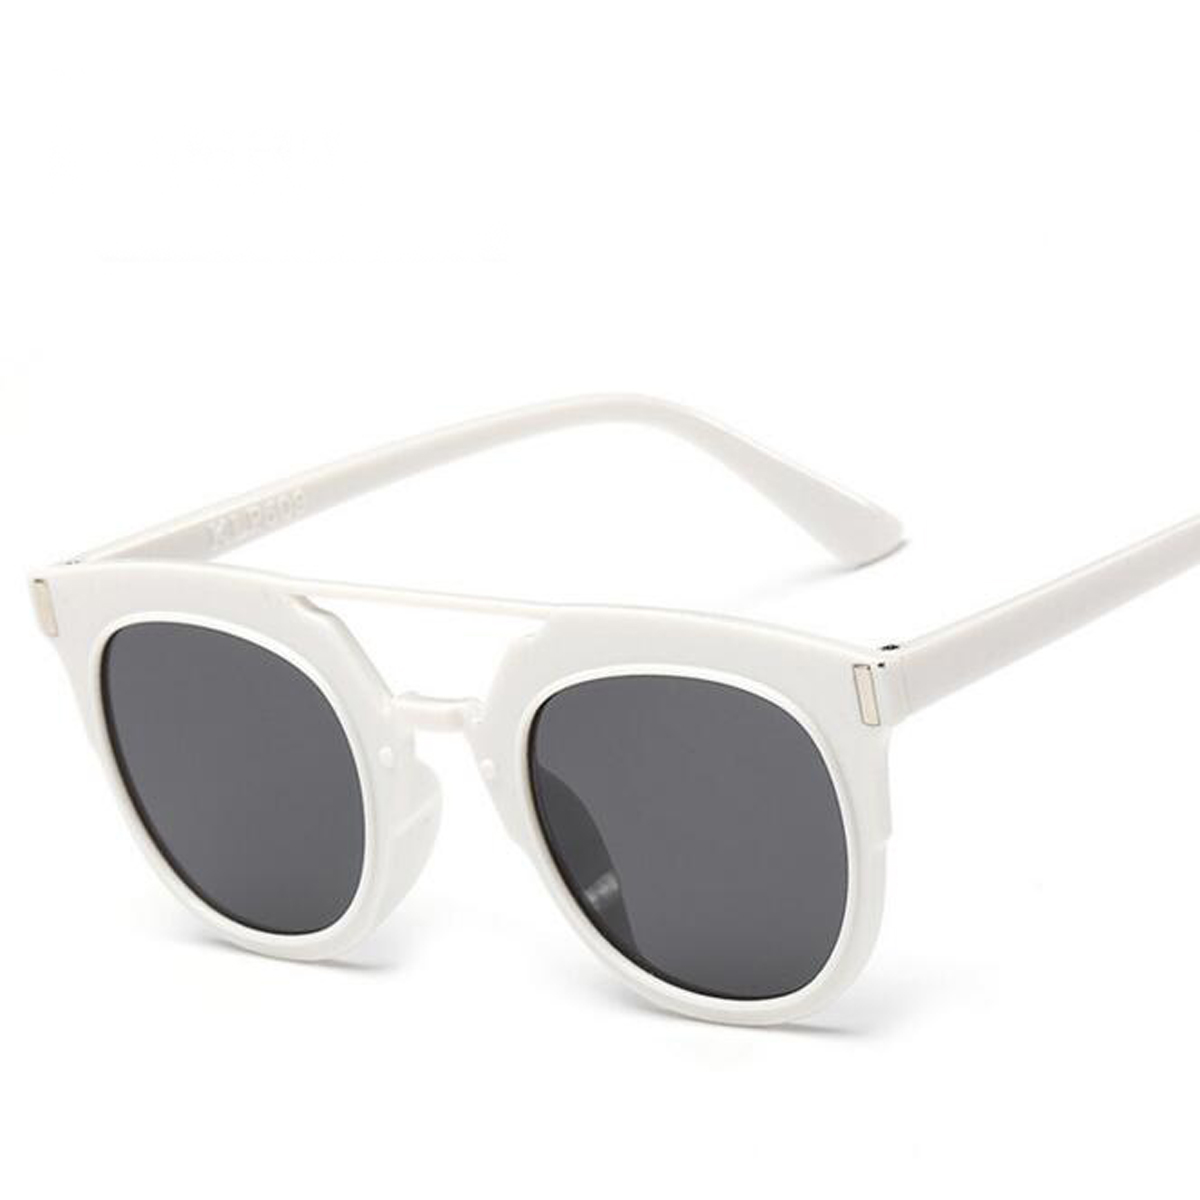 classic fashion white frame women sunglasses vintage men oval mirror uv400 sport sun glasses oculos feminino